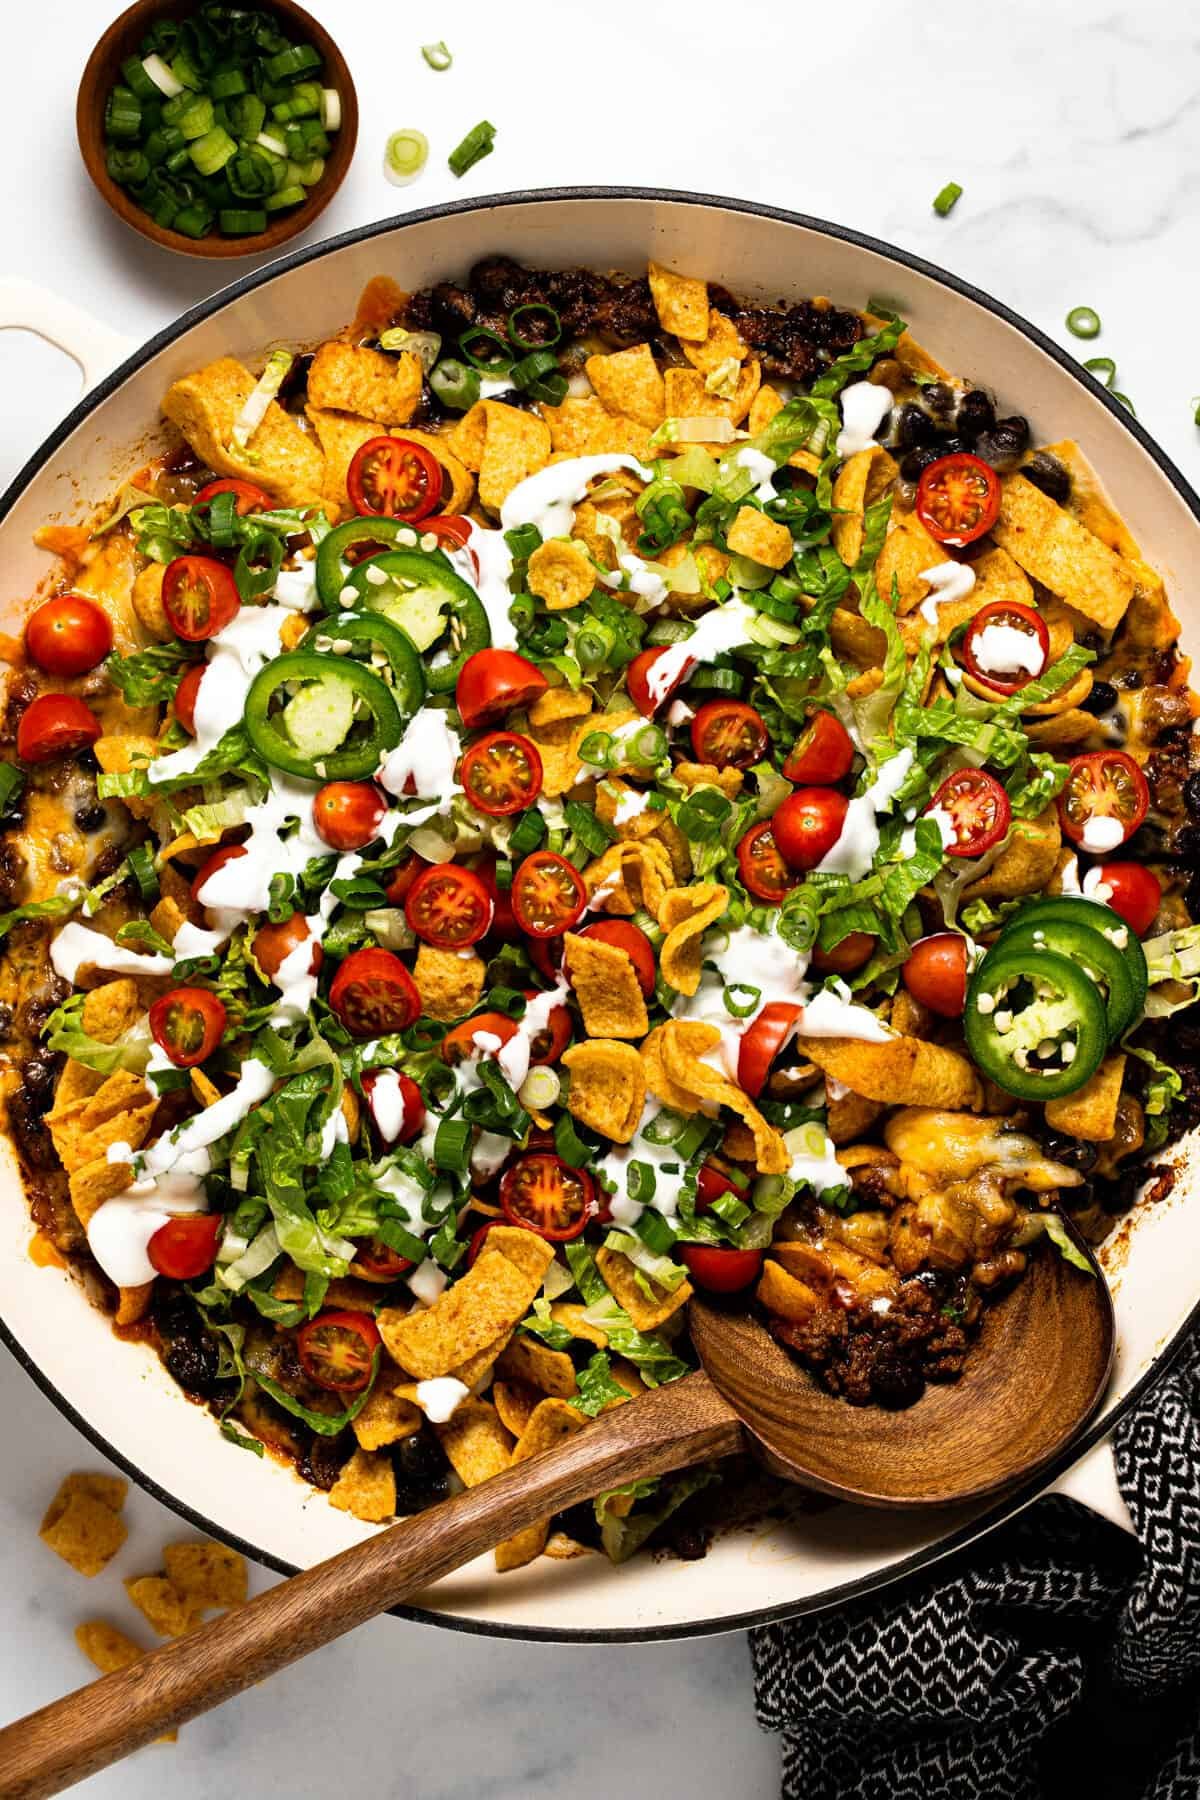 Overhead shot of a large pan filled with walking taco casserole garnished with sour cream